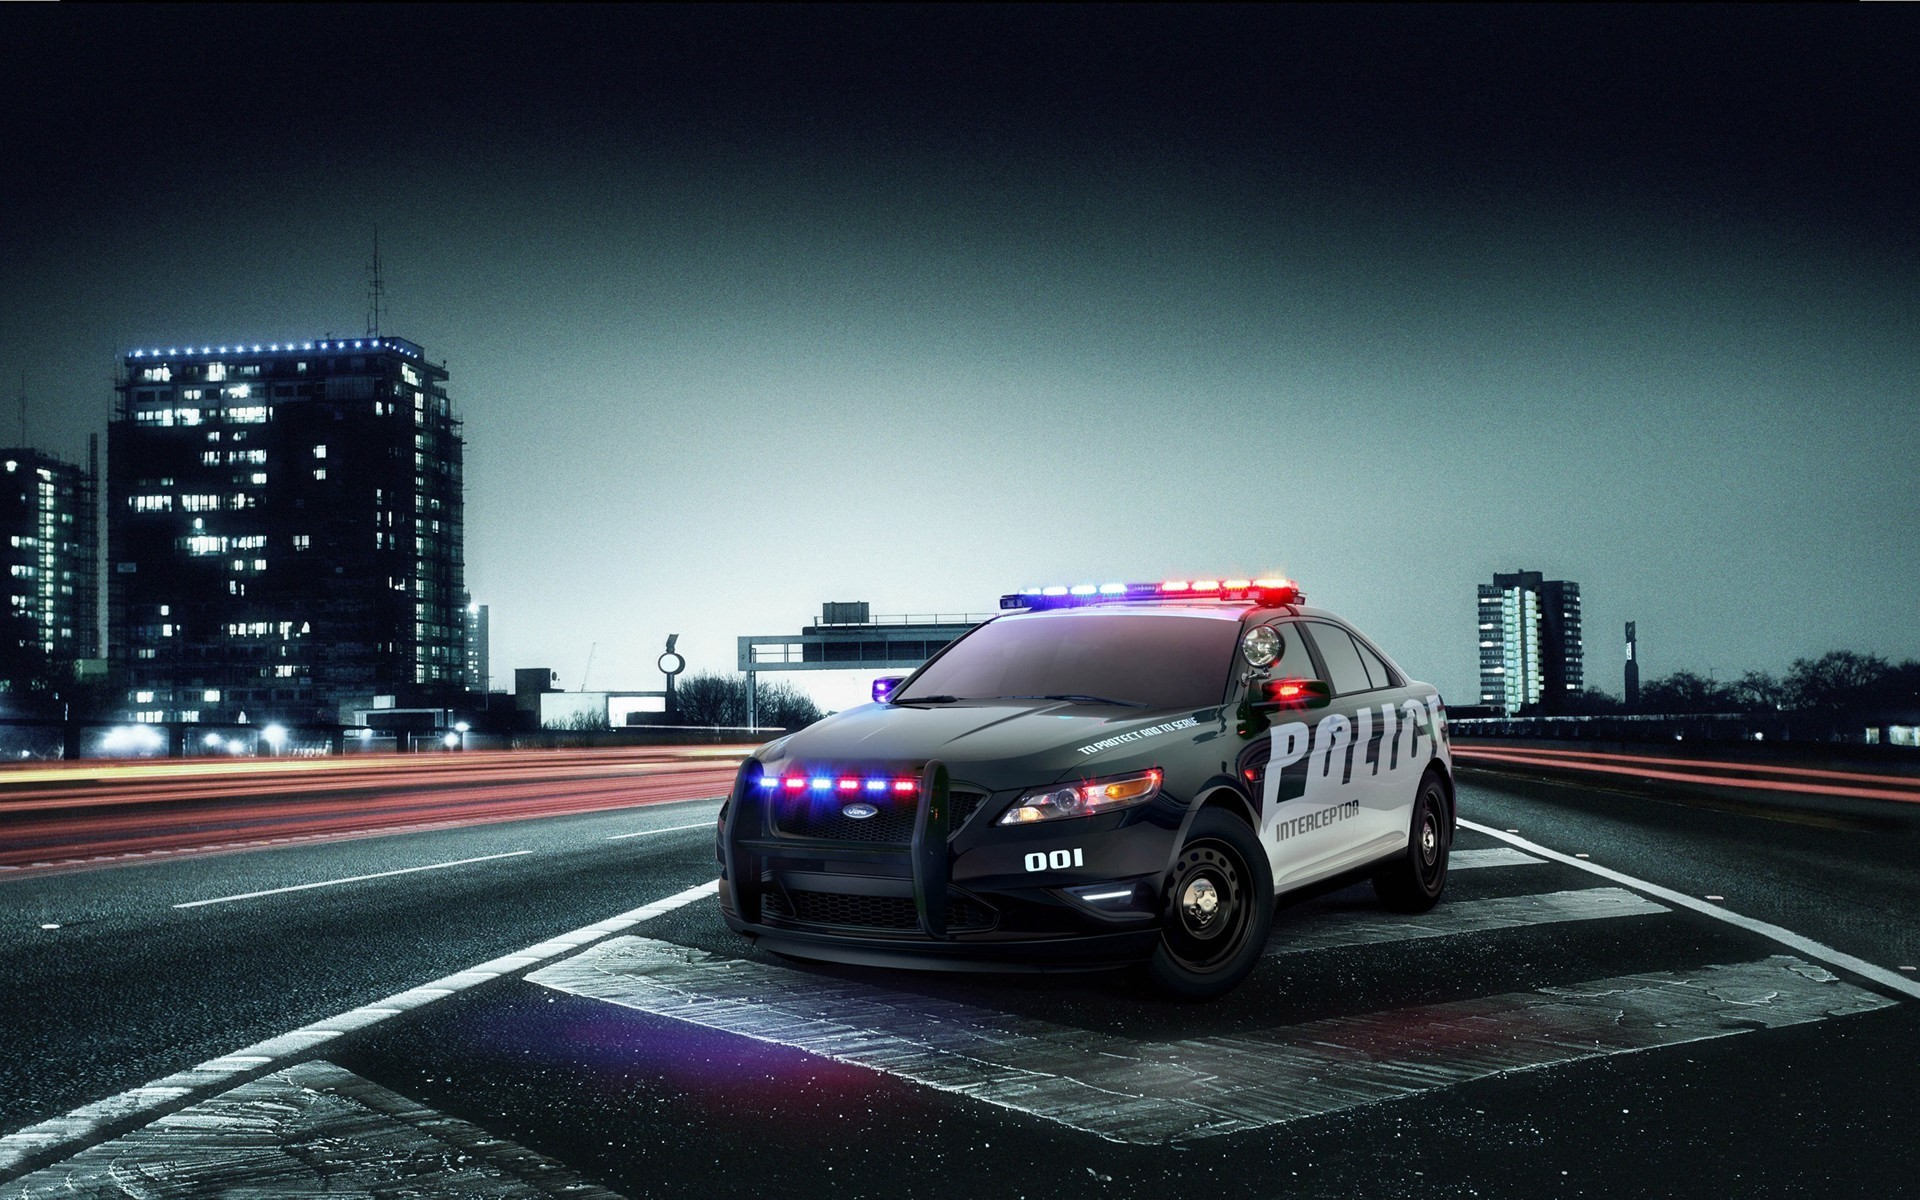 Police Background 183 ① Download Free Cool Full Hd Wallpapers For Desktop Computers And Smartphones